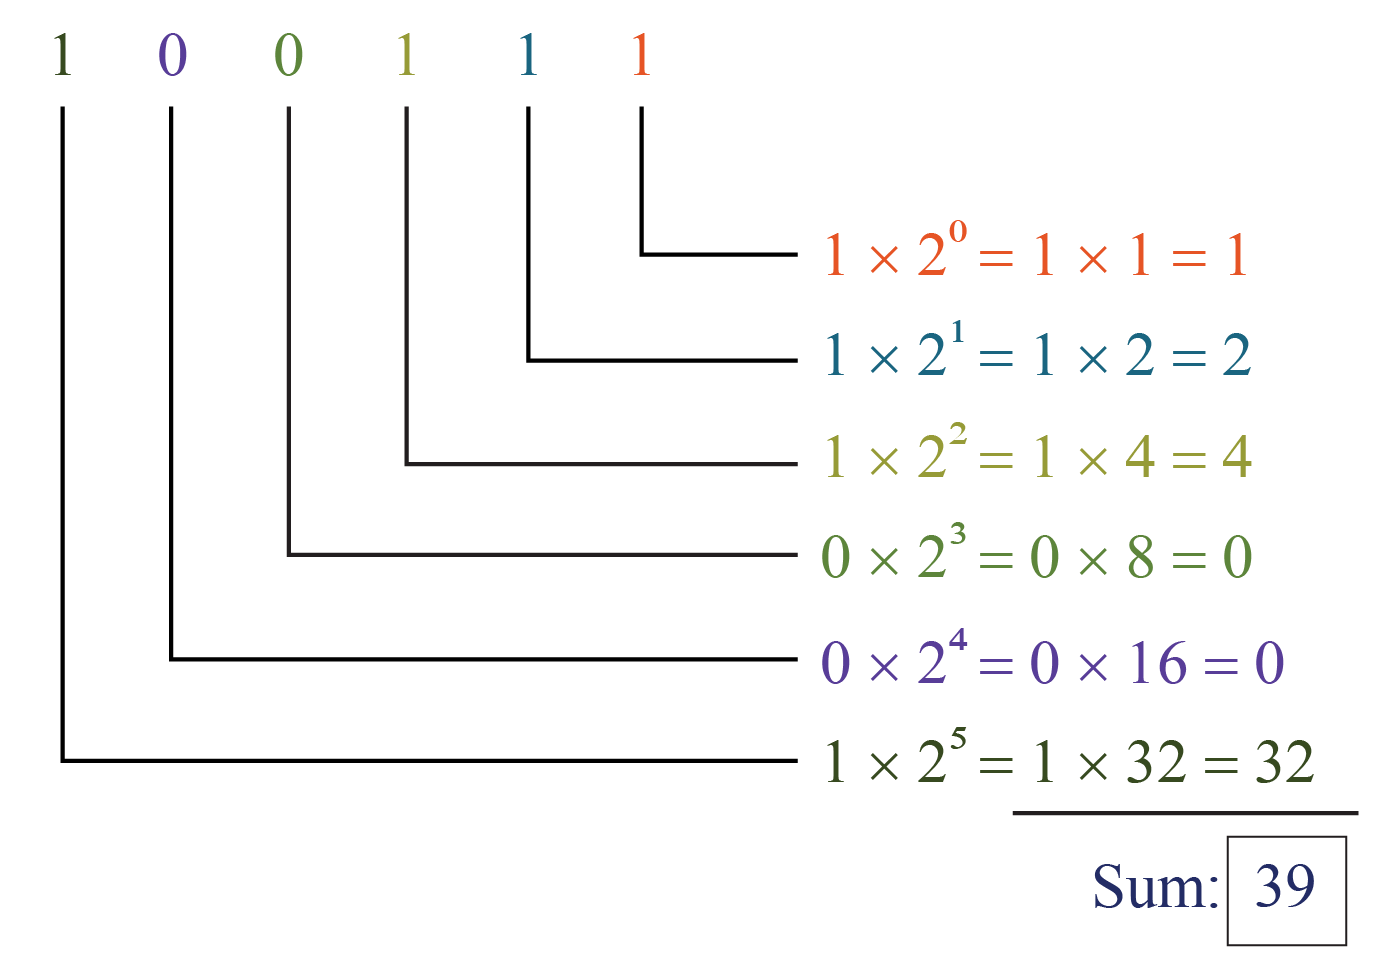 number system conversion example of the binary number 100111 into decimal number system